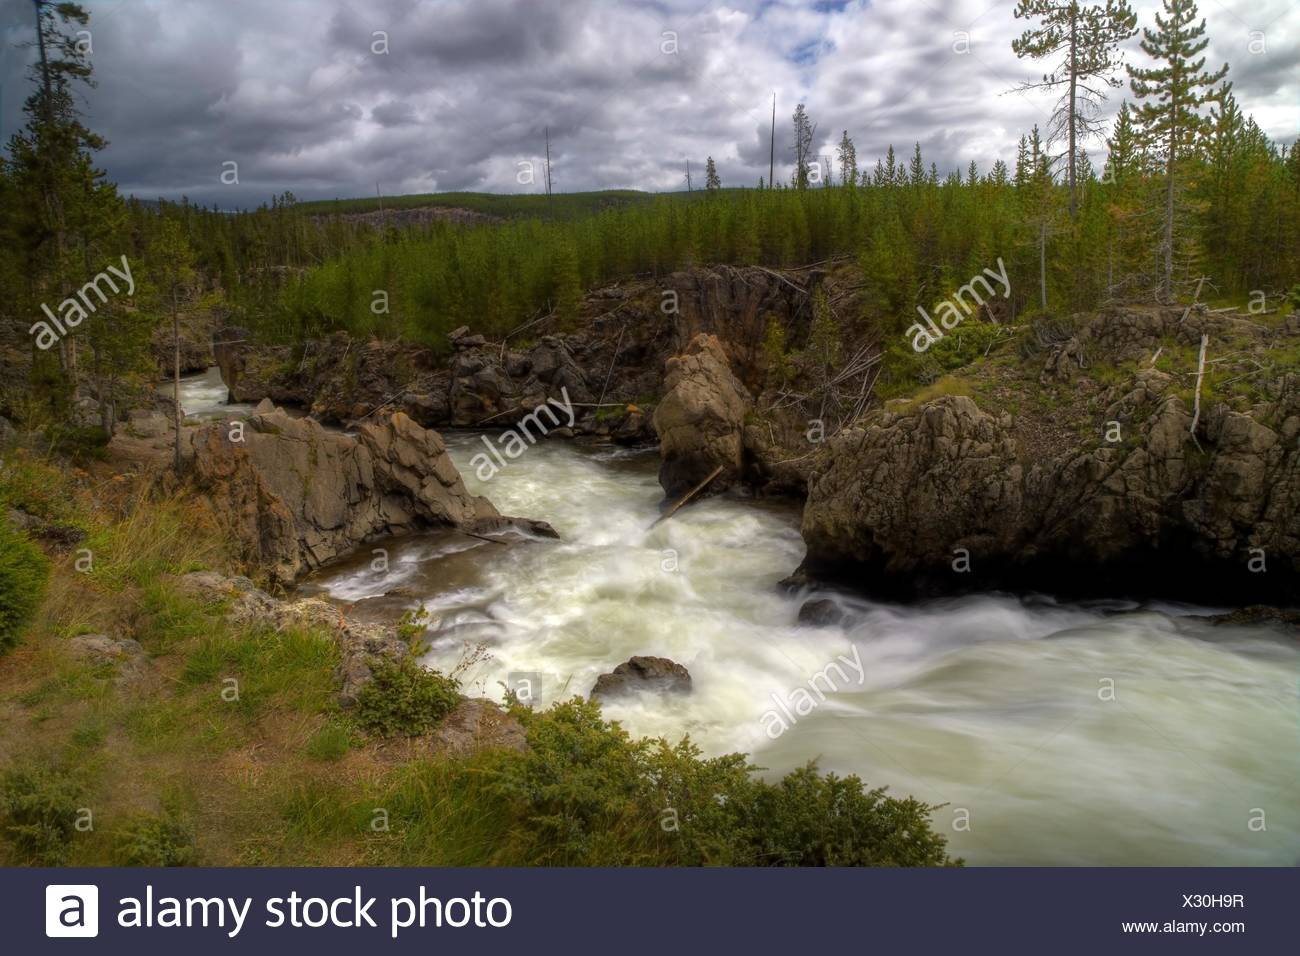 The Firehole River roars through Firehole Canyon at Yellowstone National Park, Wyoming. - Stock Image